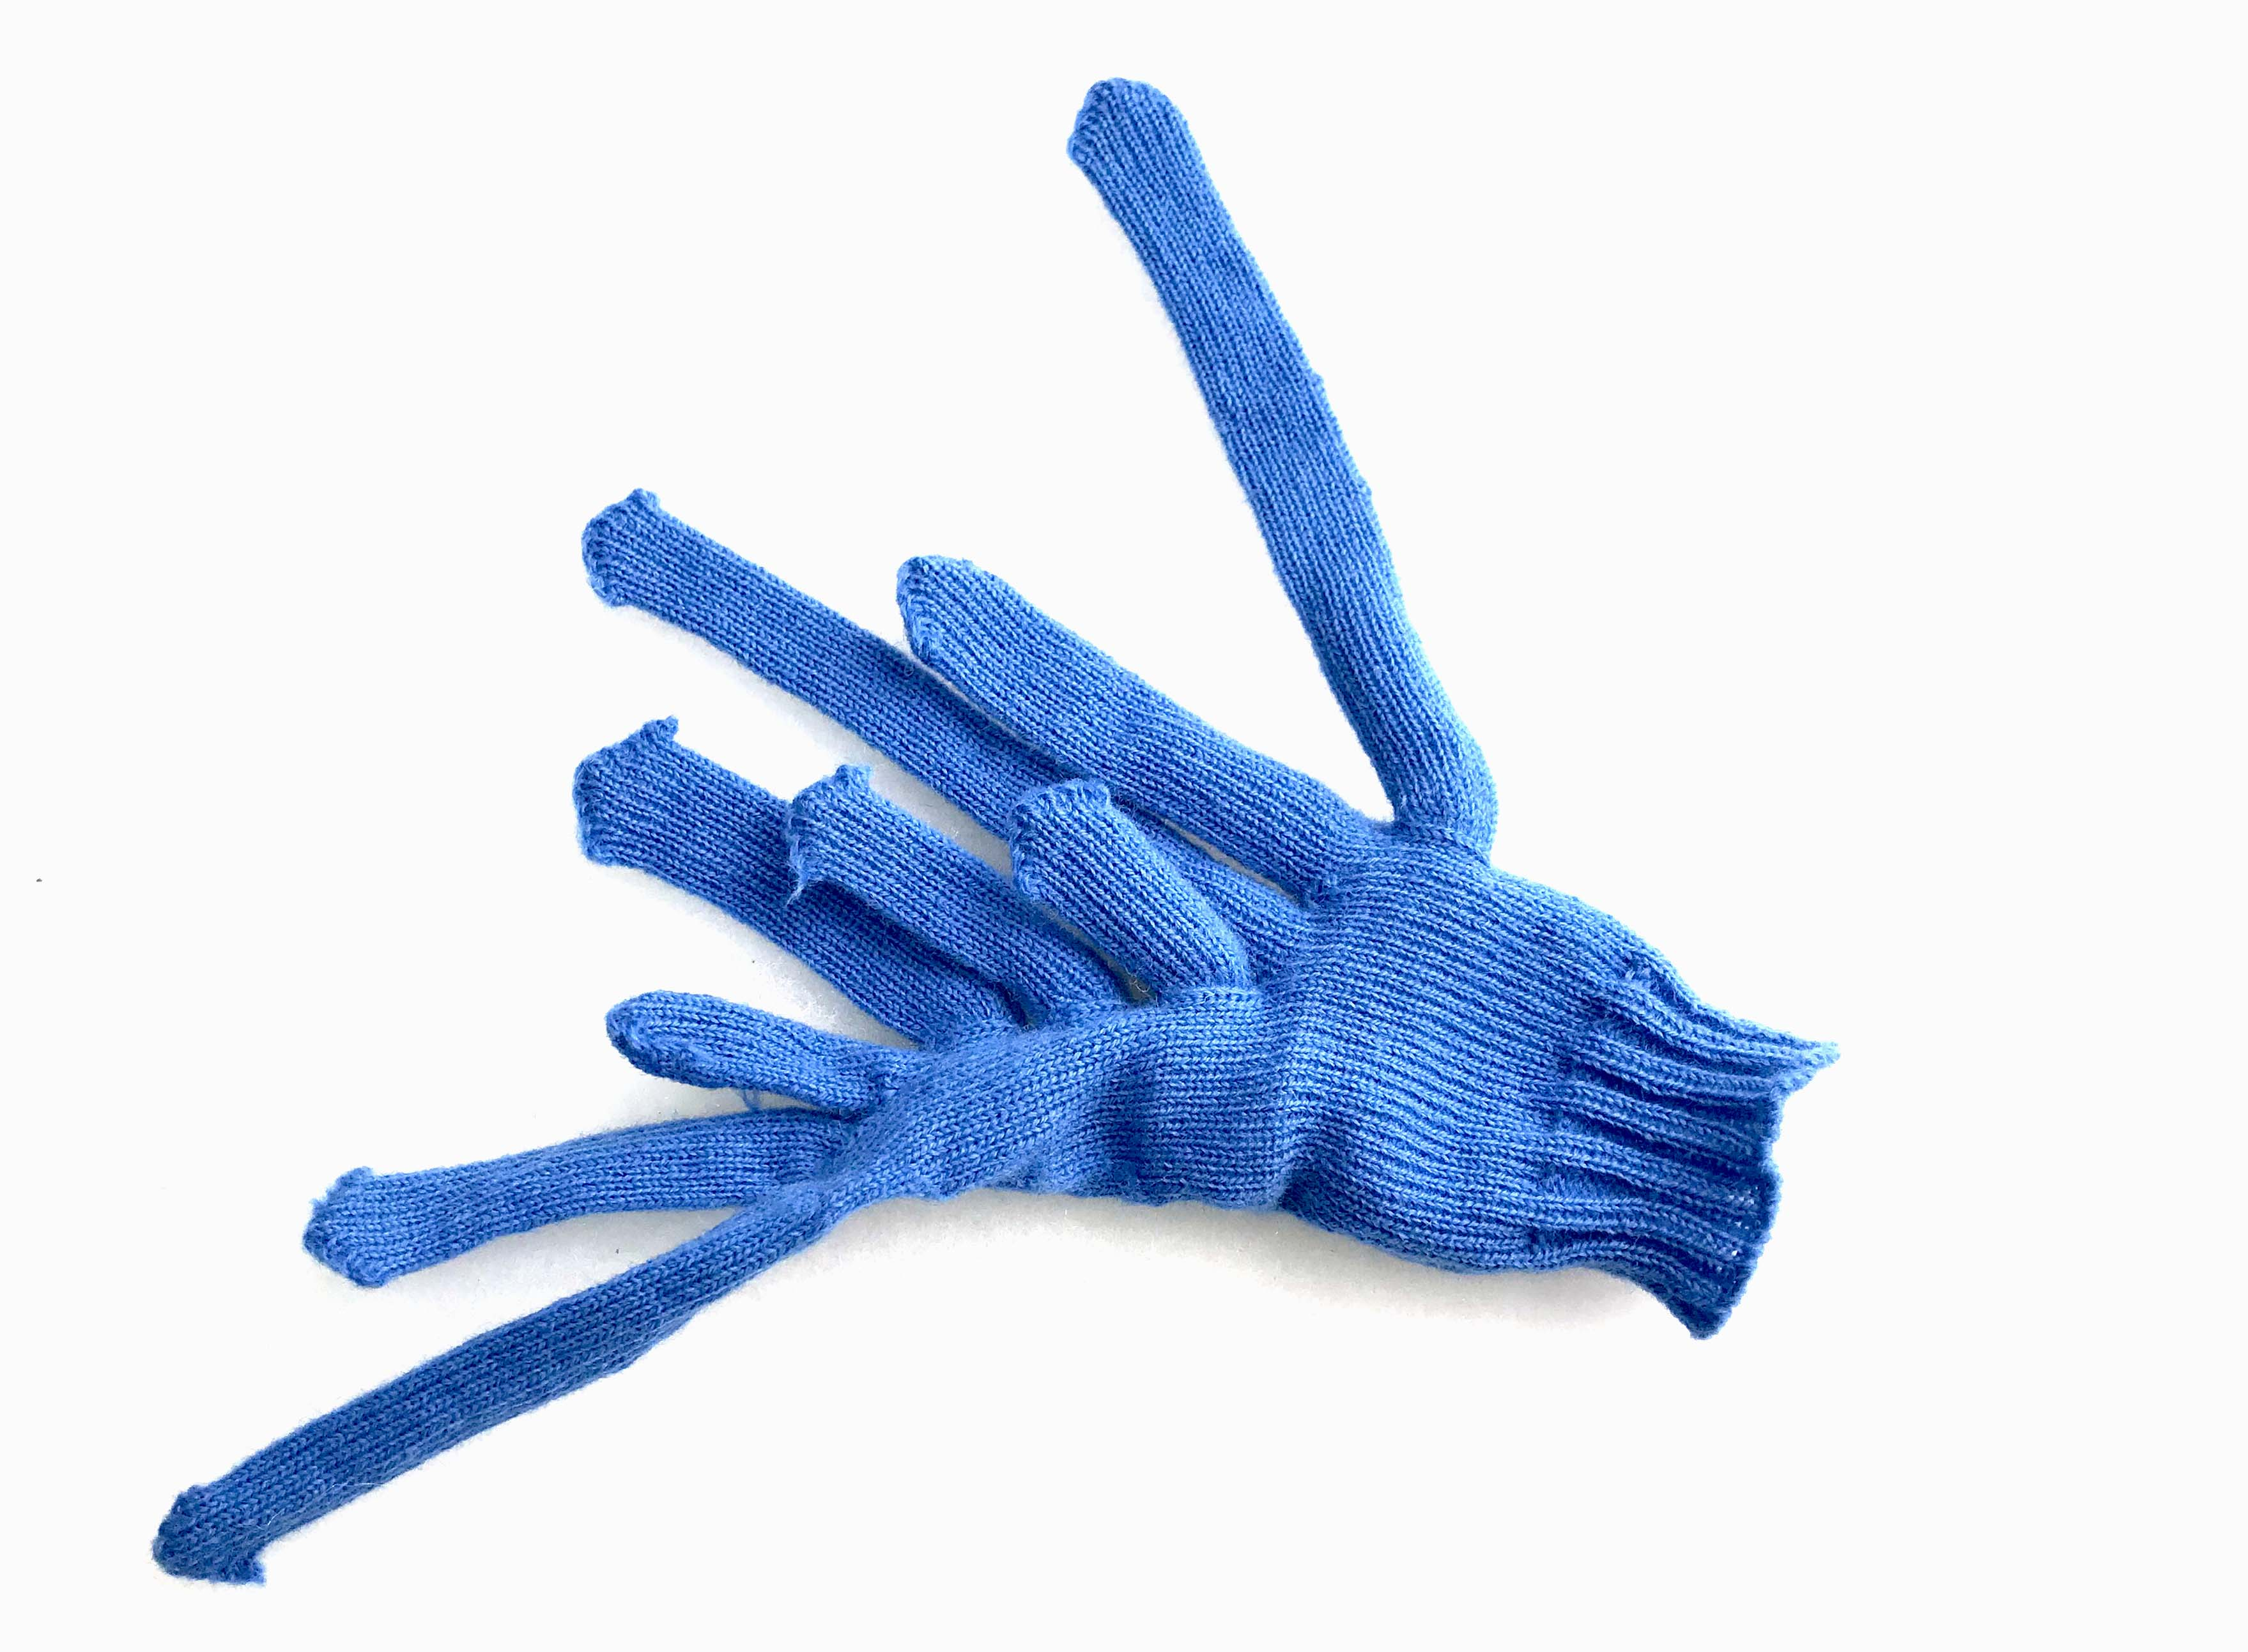 Another glove with slightly too many fingers and thumbs.